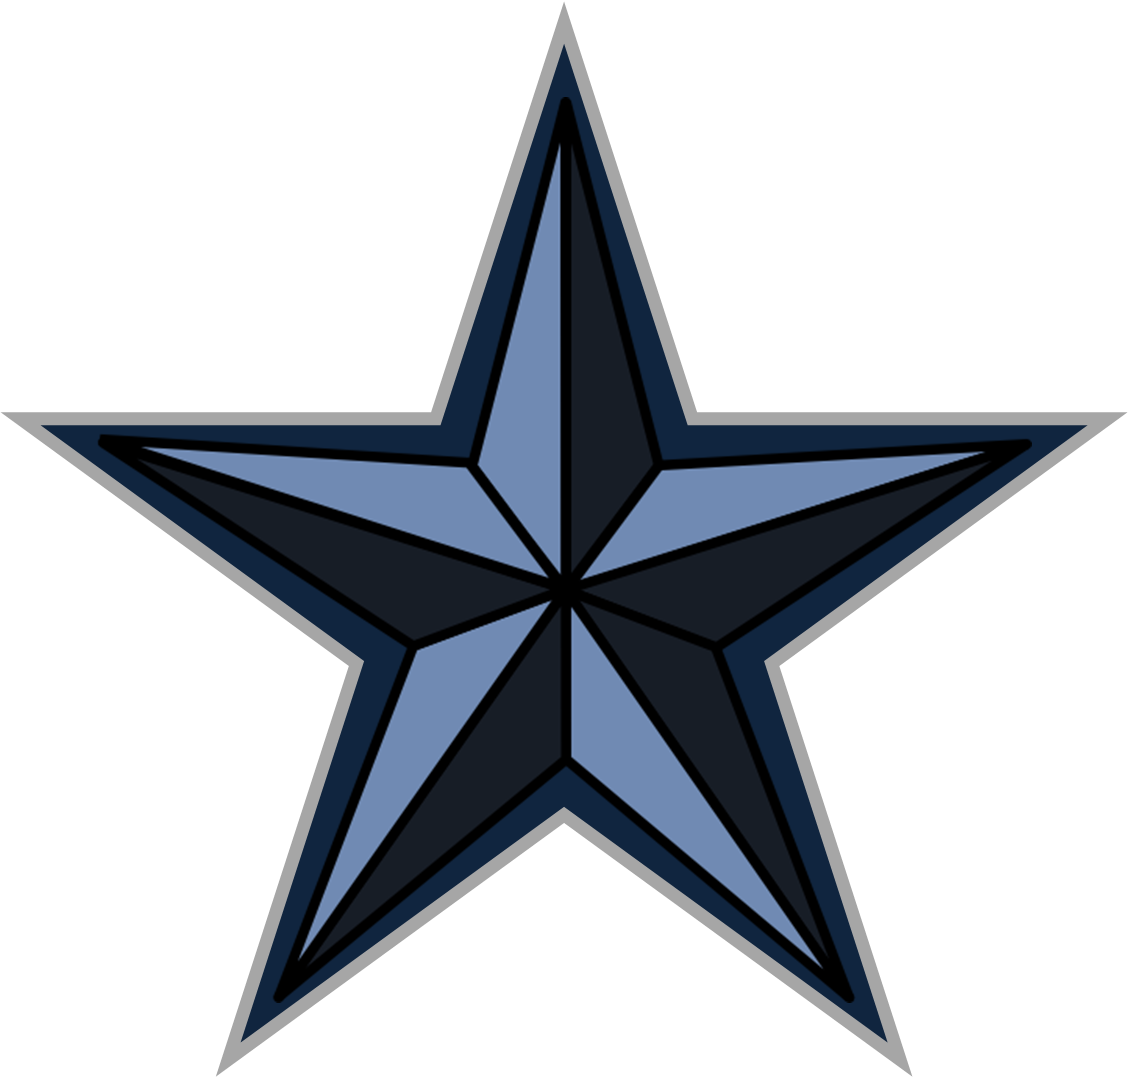 1128x1078 Star Clipart Royal Blue